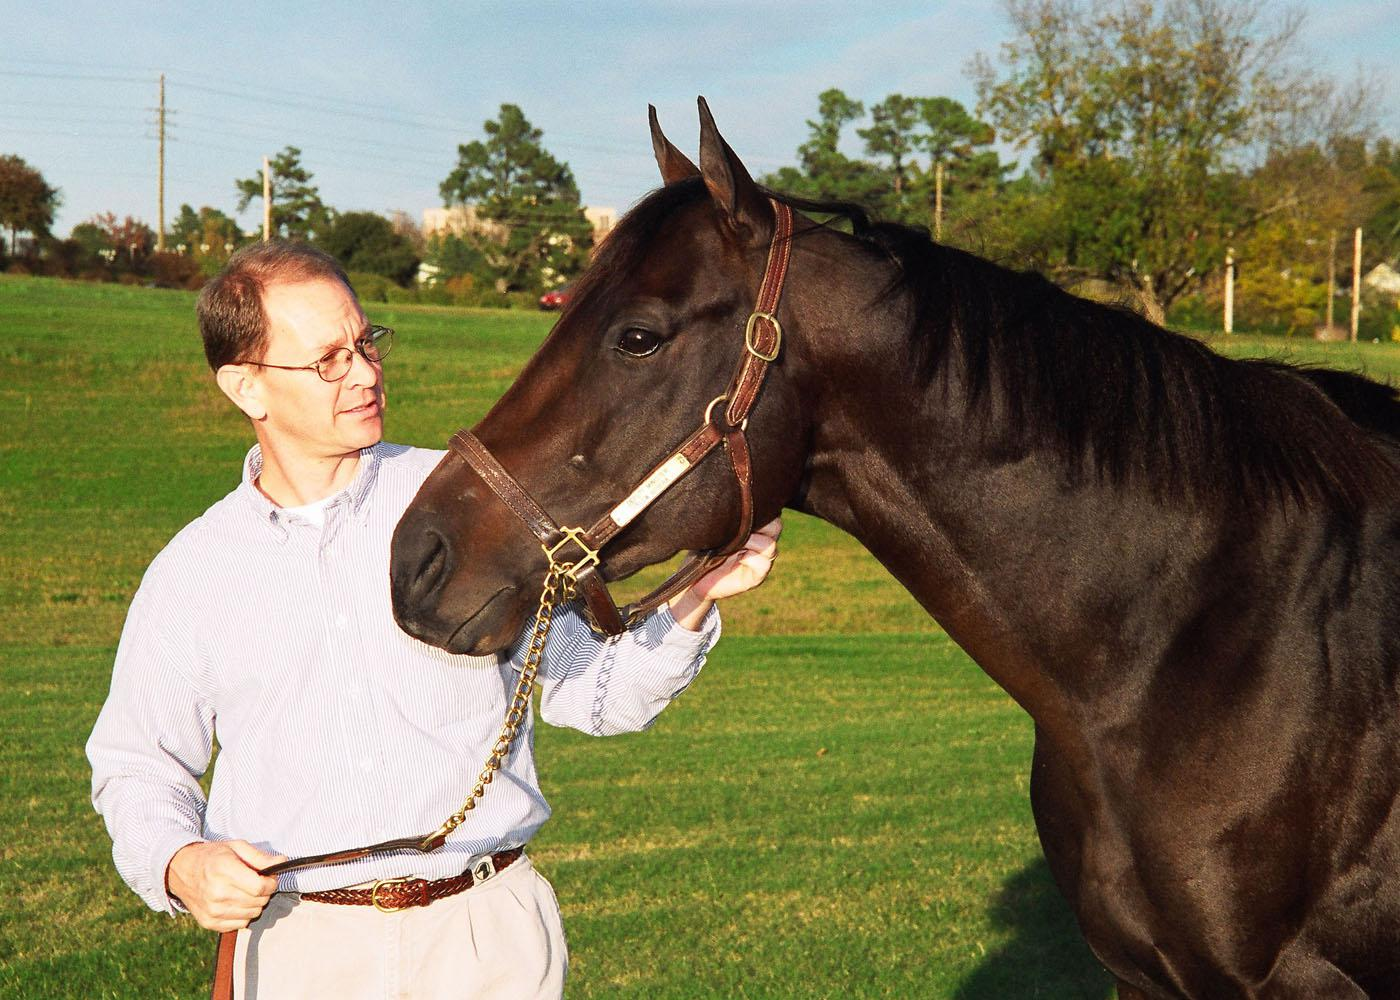 Dr. David Christiansen, a clinical instructor in Mississippi State University's College of Veterinary Medicine, holds Minister Slew, the grandson of Triple Crown winner Seattle Slew. The university is offering Minister Slew and four other stallions for stud services to horse breeders around the region. (Photo by Linda Breazeale, MSU Ag Communications )